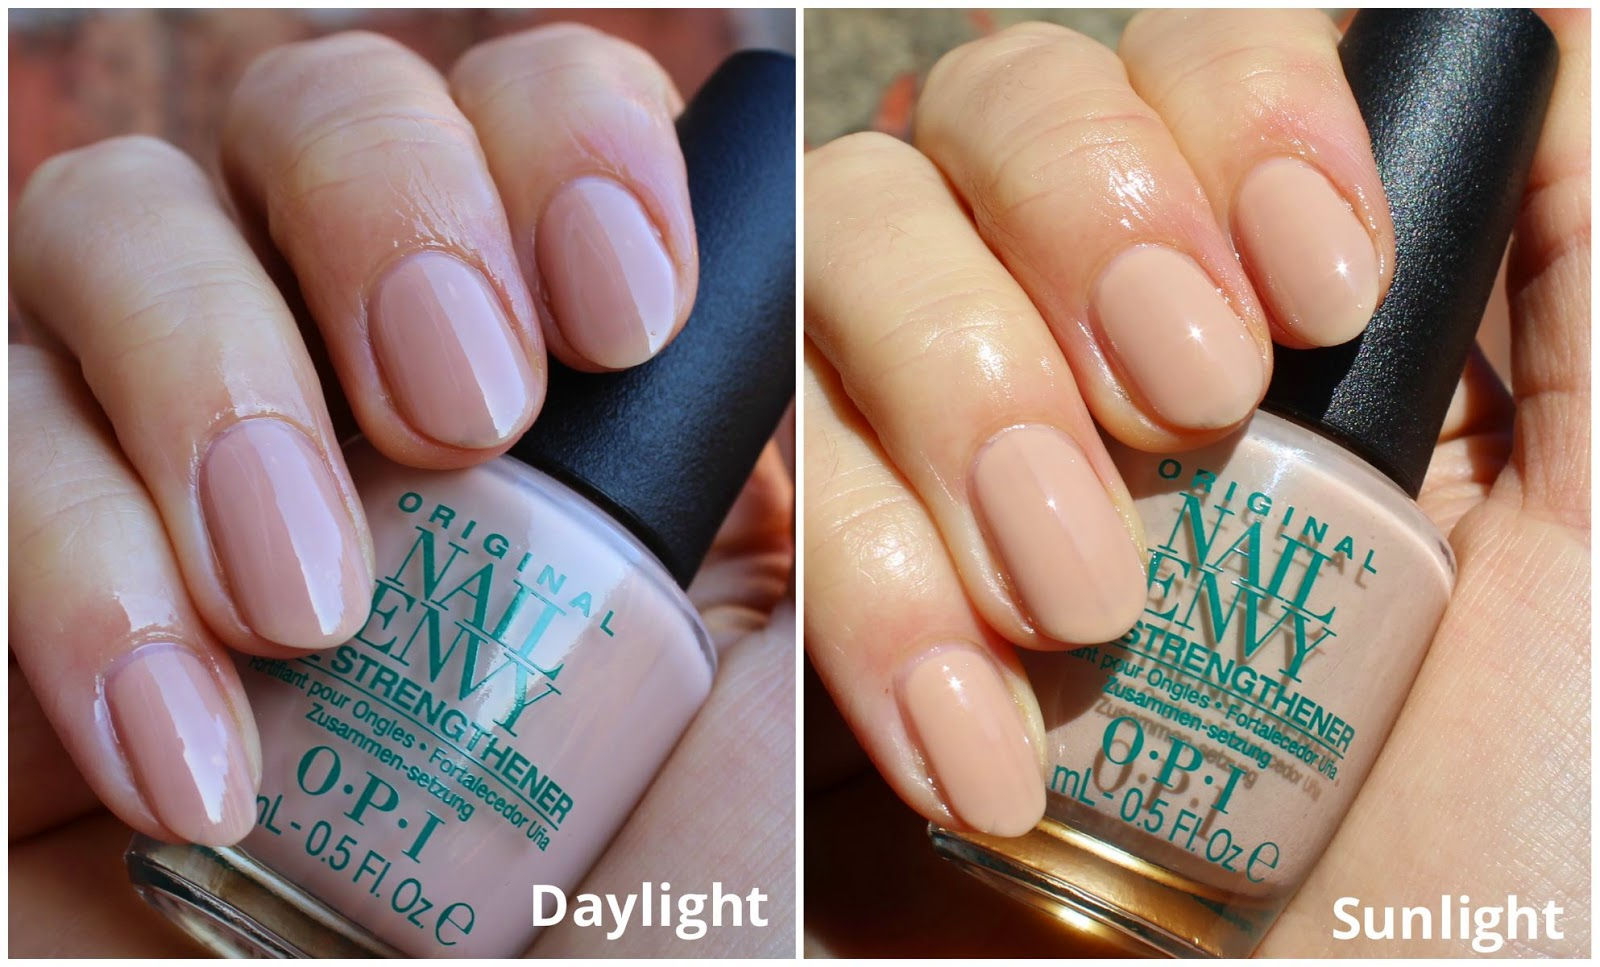 BEAUTY & LE CHIC: Nails to Envy